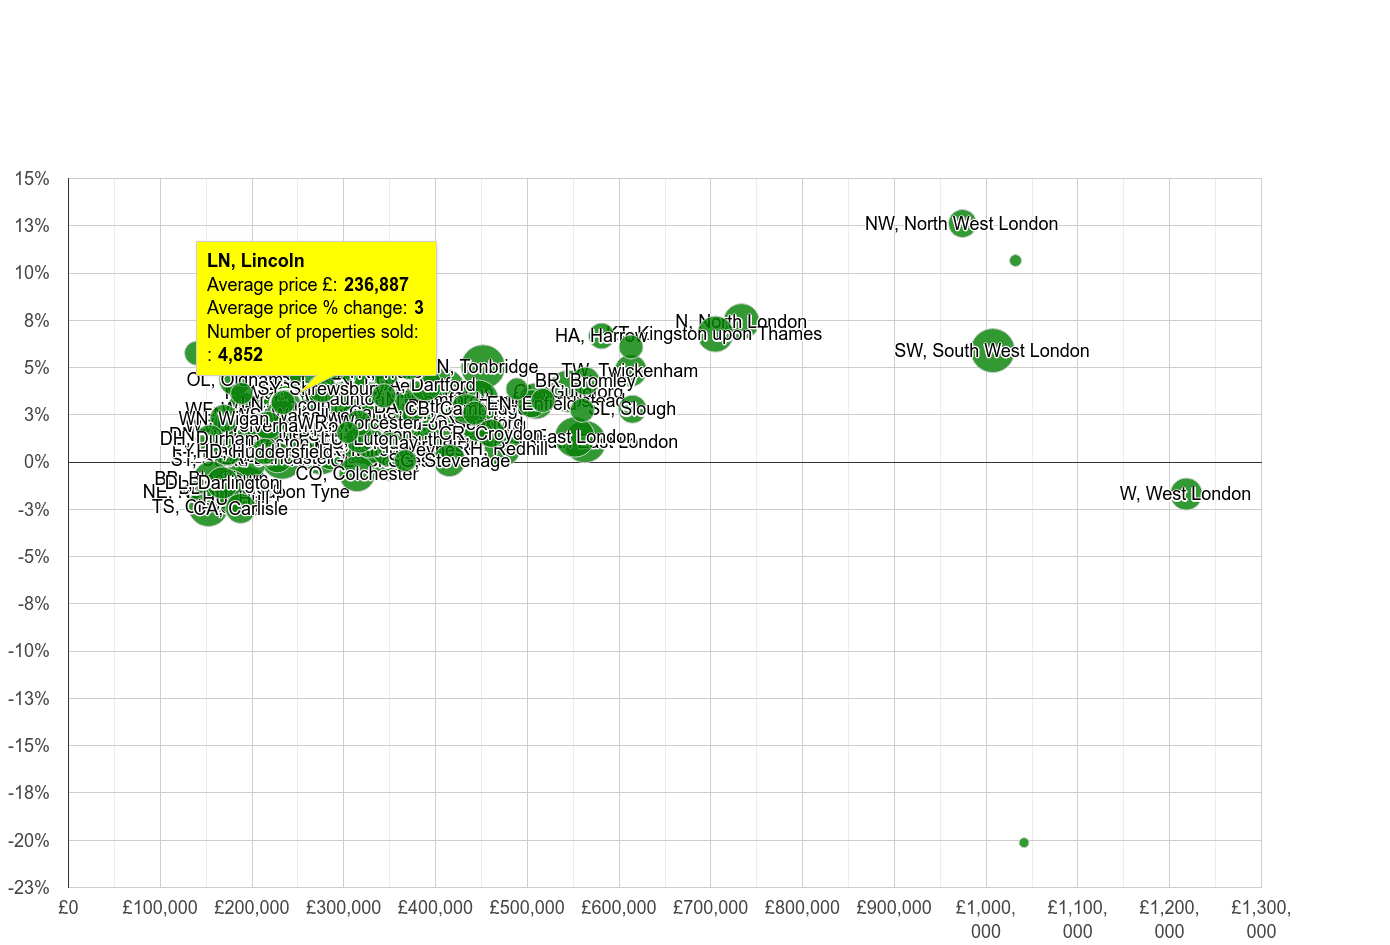 Lincoln house prices compared to other areas